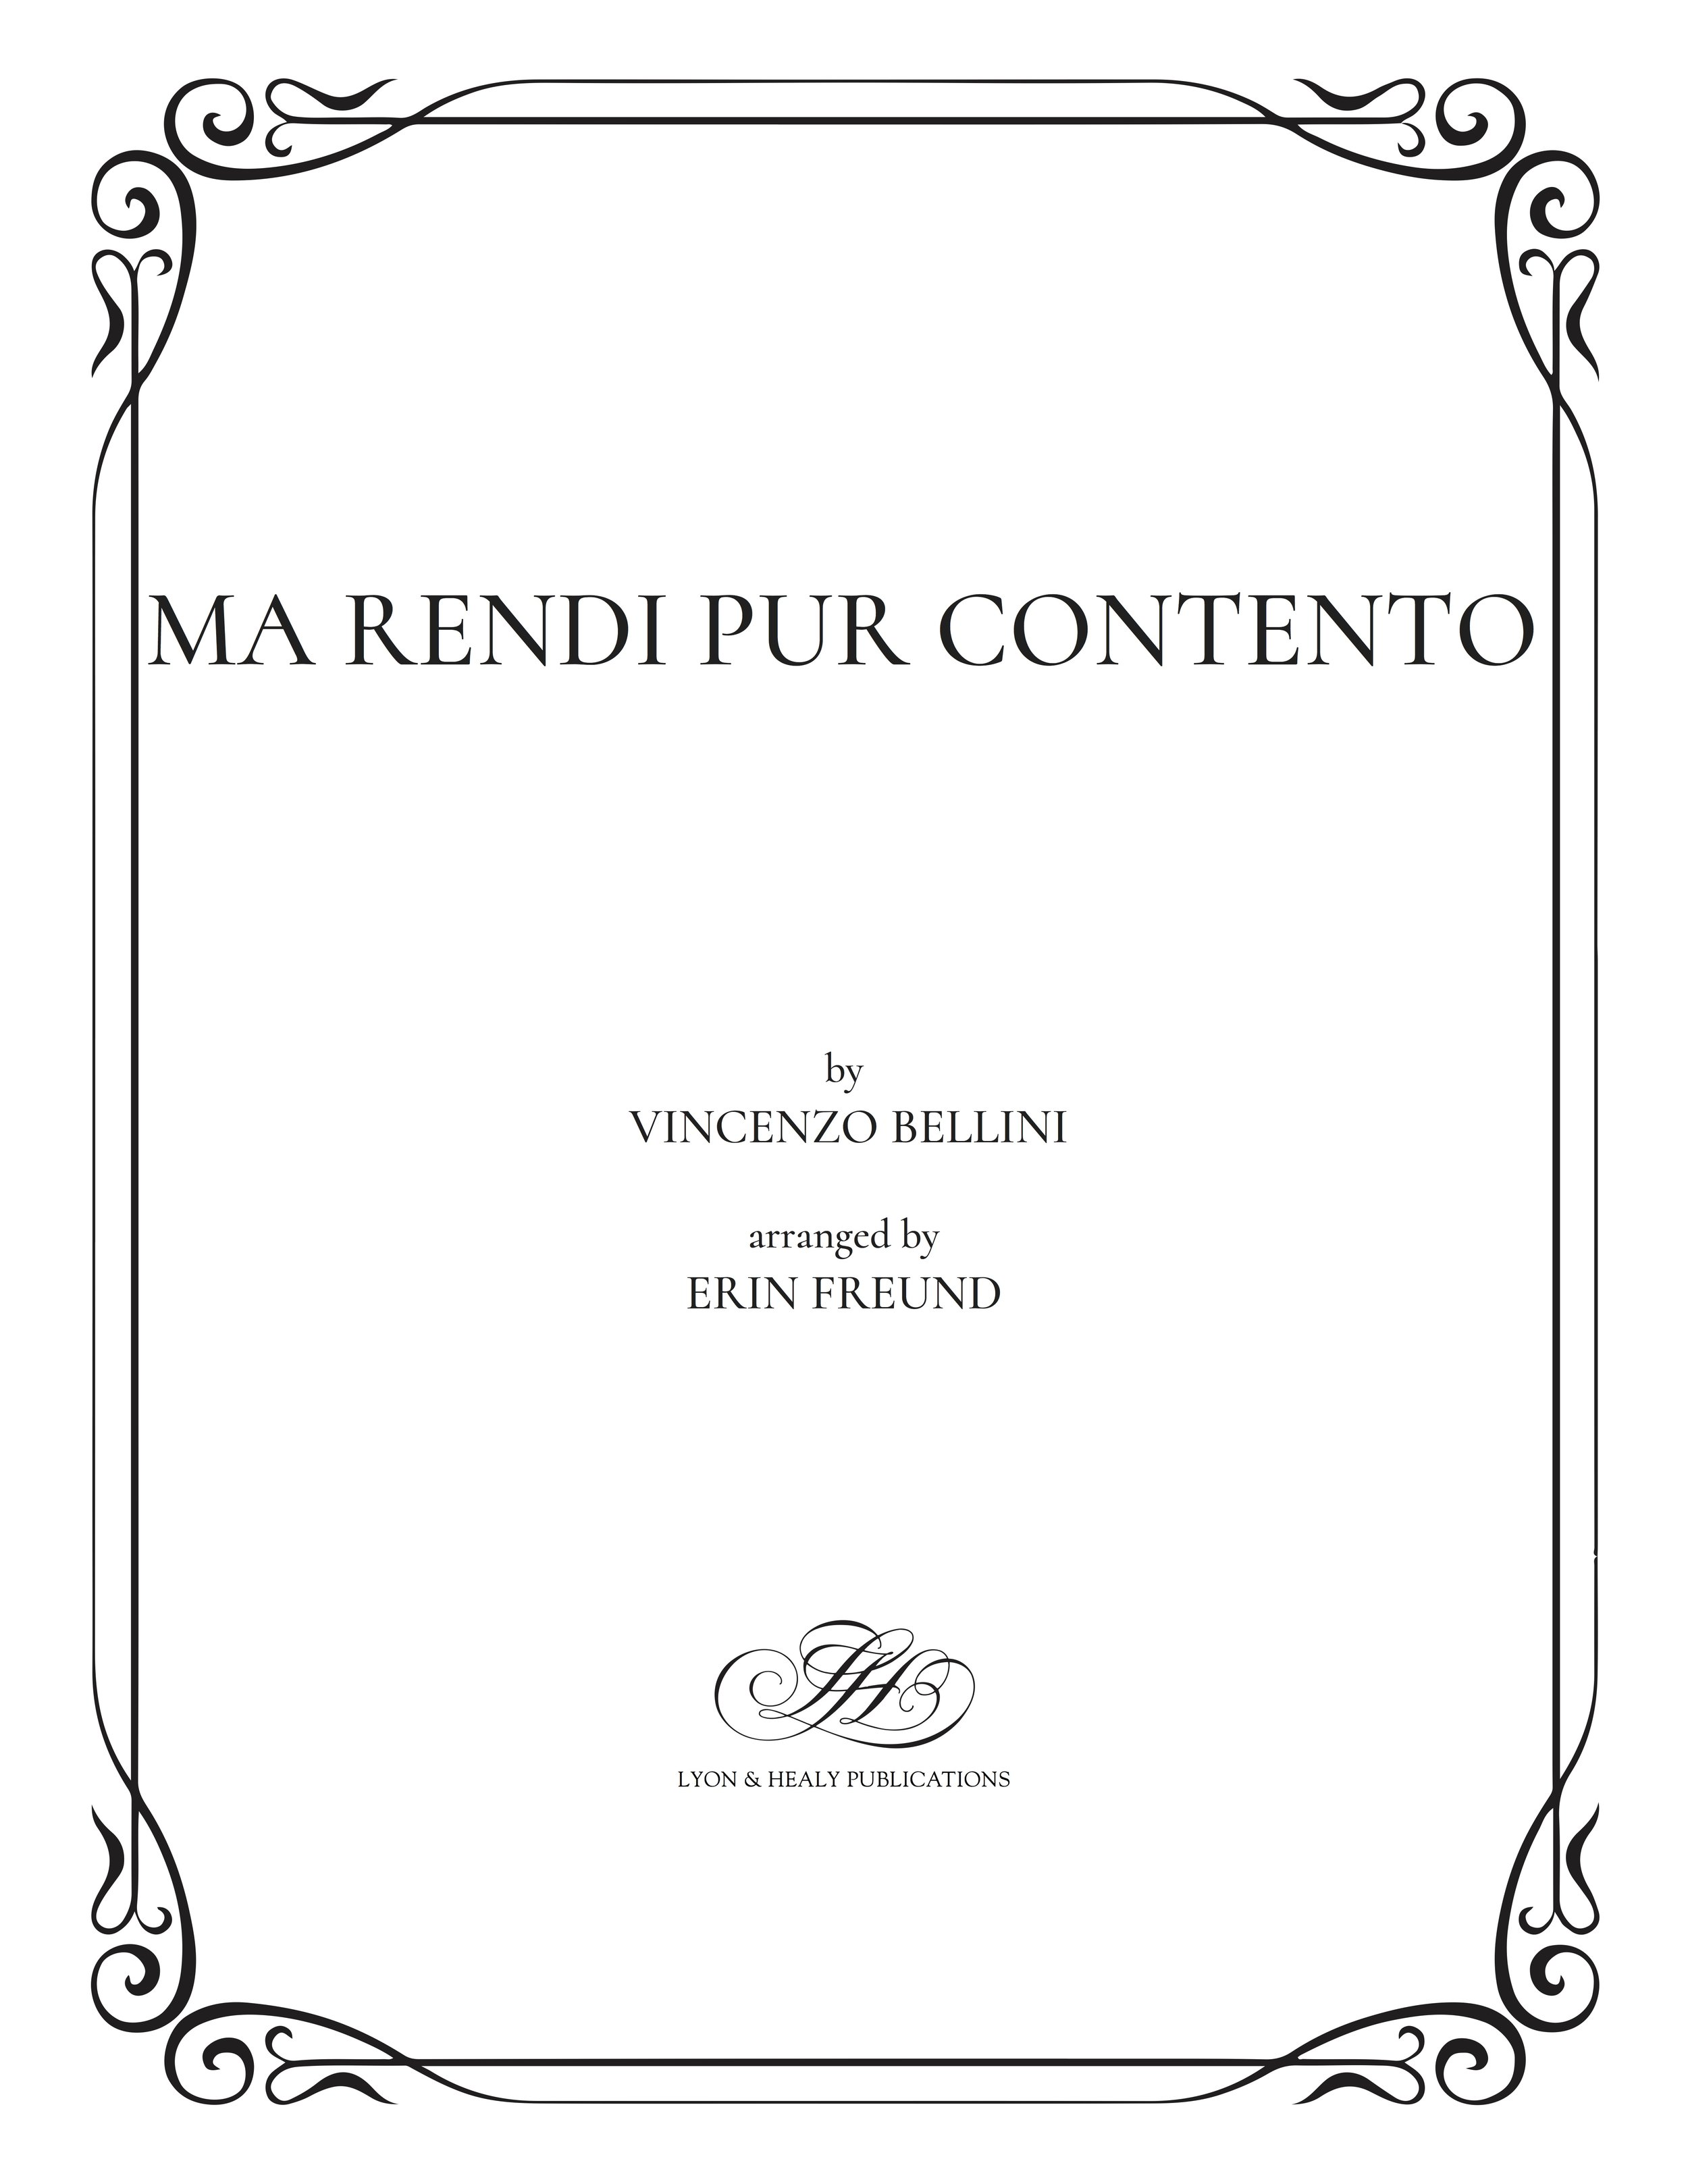 Ma rendi pur contento - Bellini-Freund cover.jpg